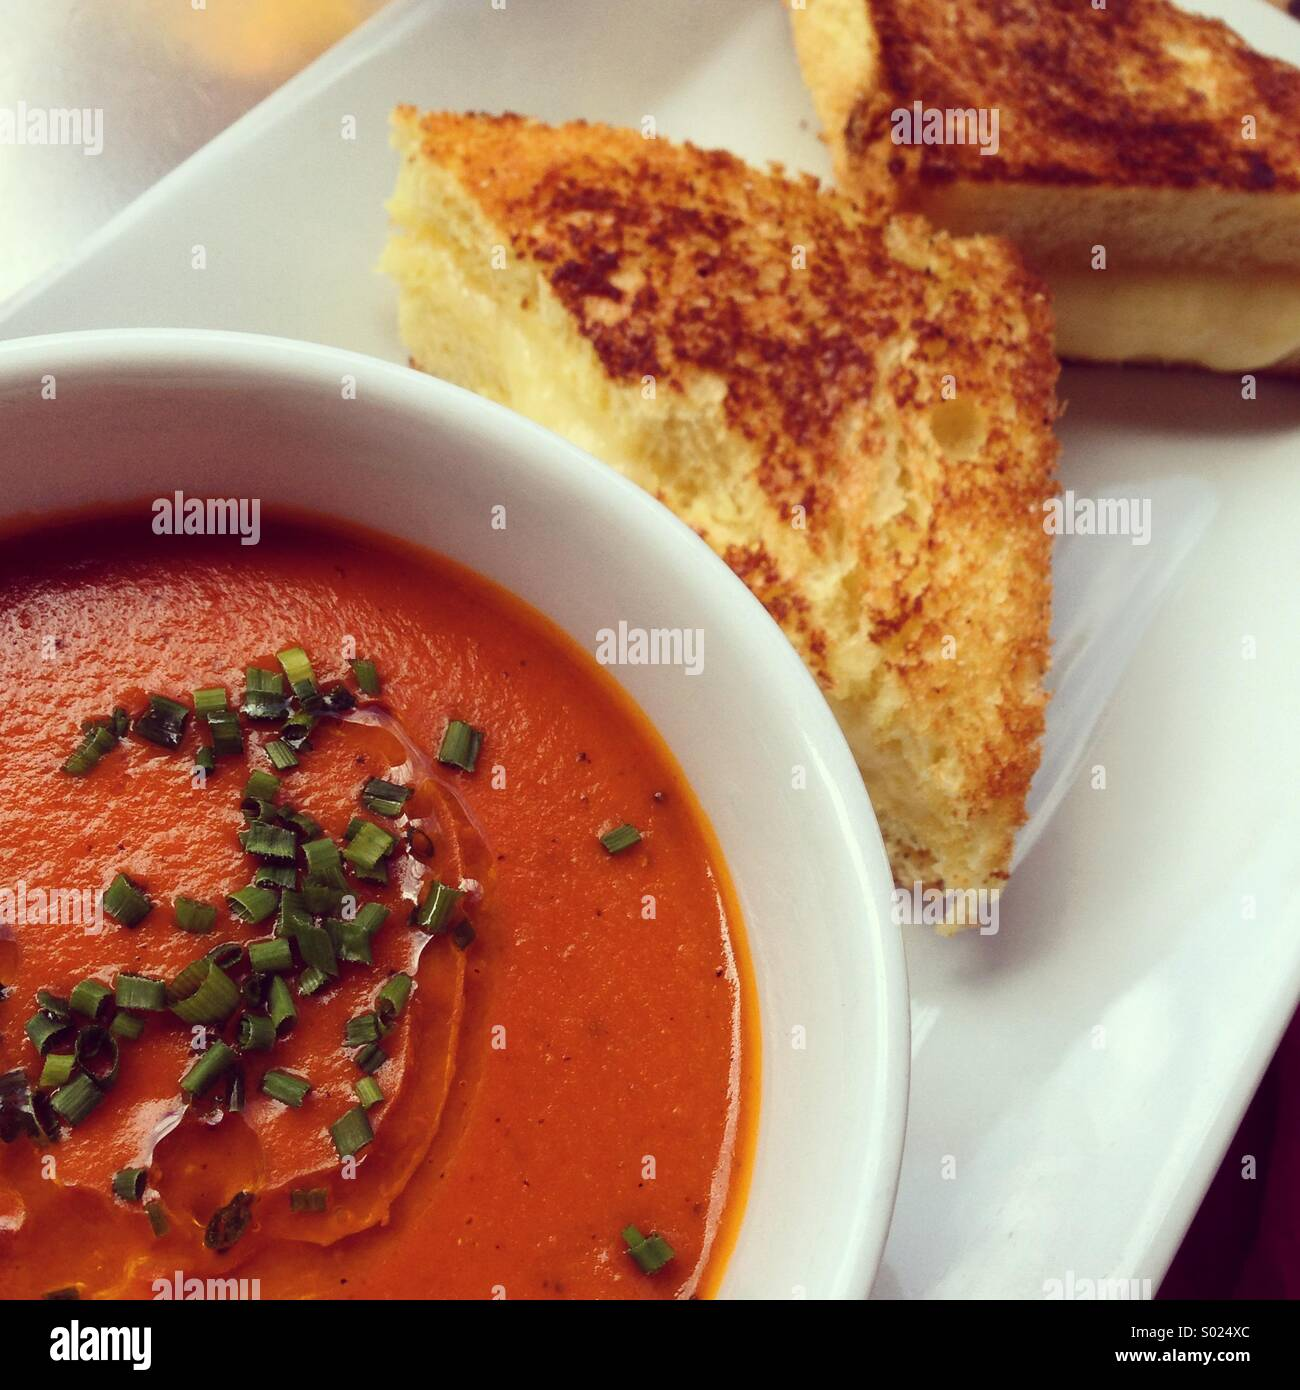 Grilled cheese and tomato soup - Stock Image